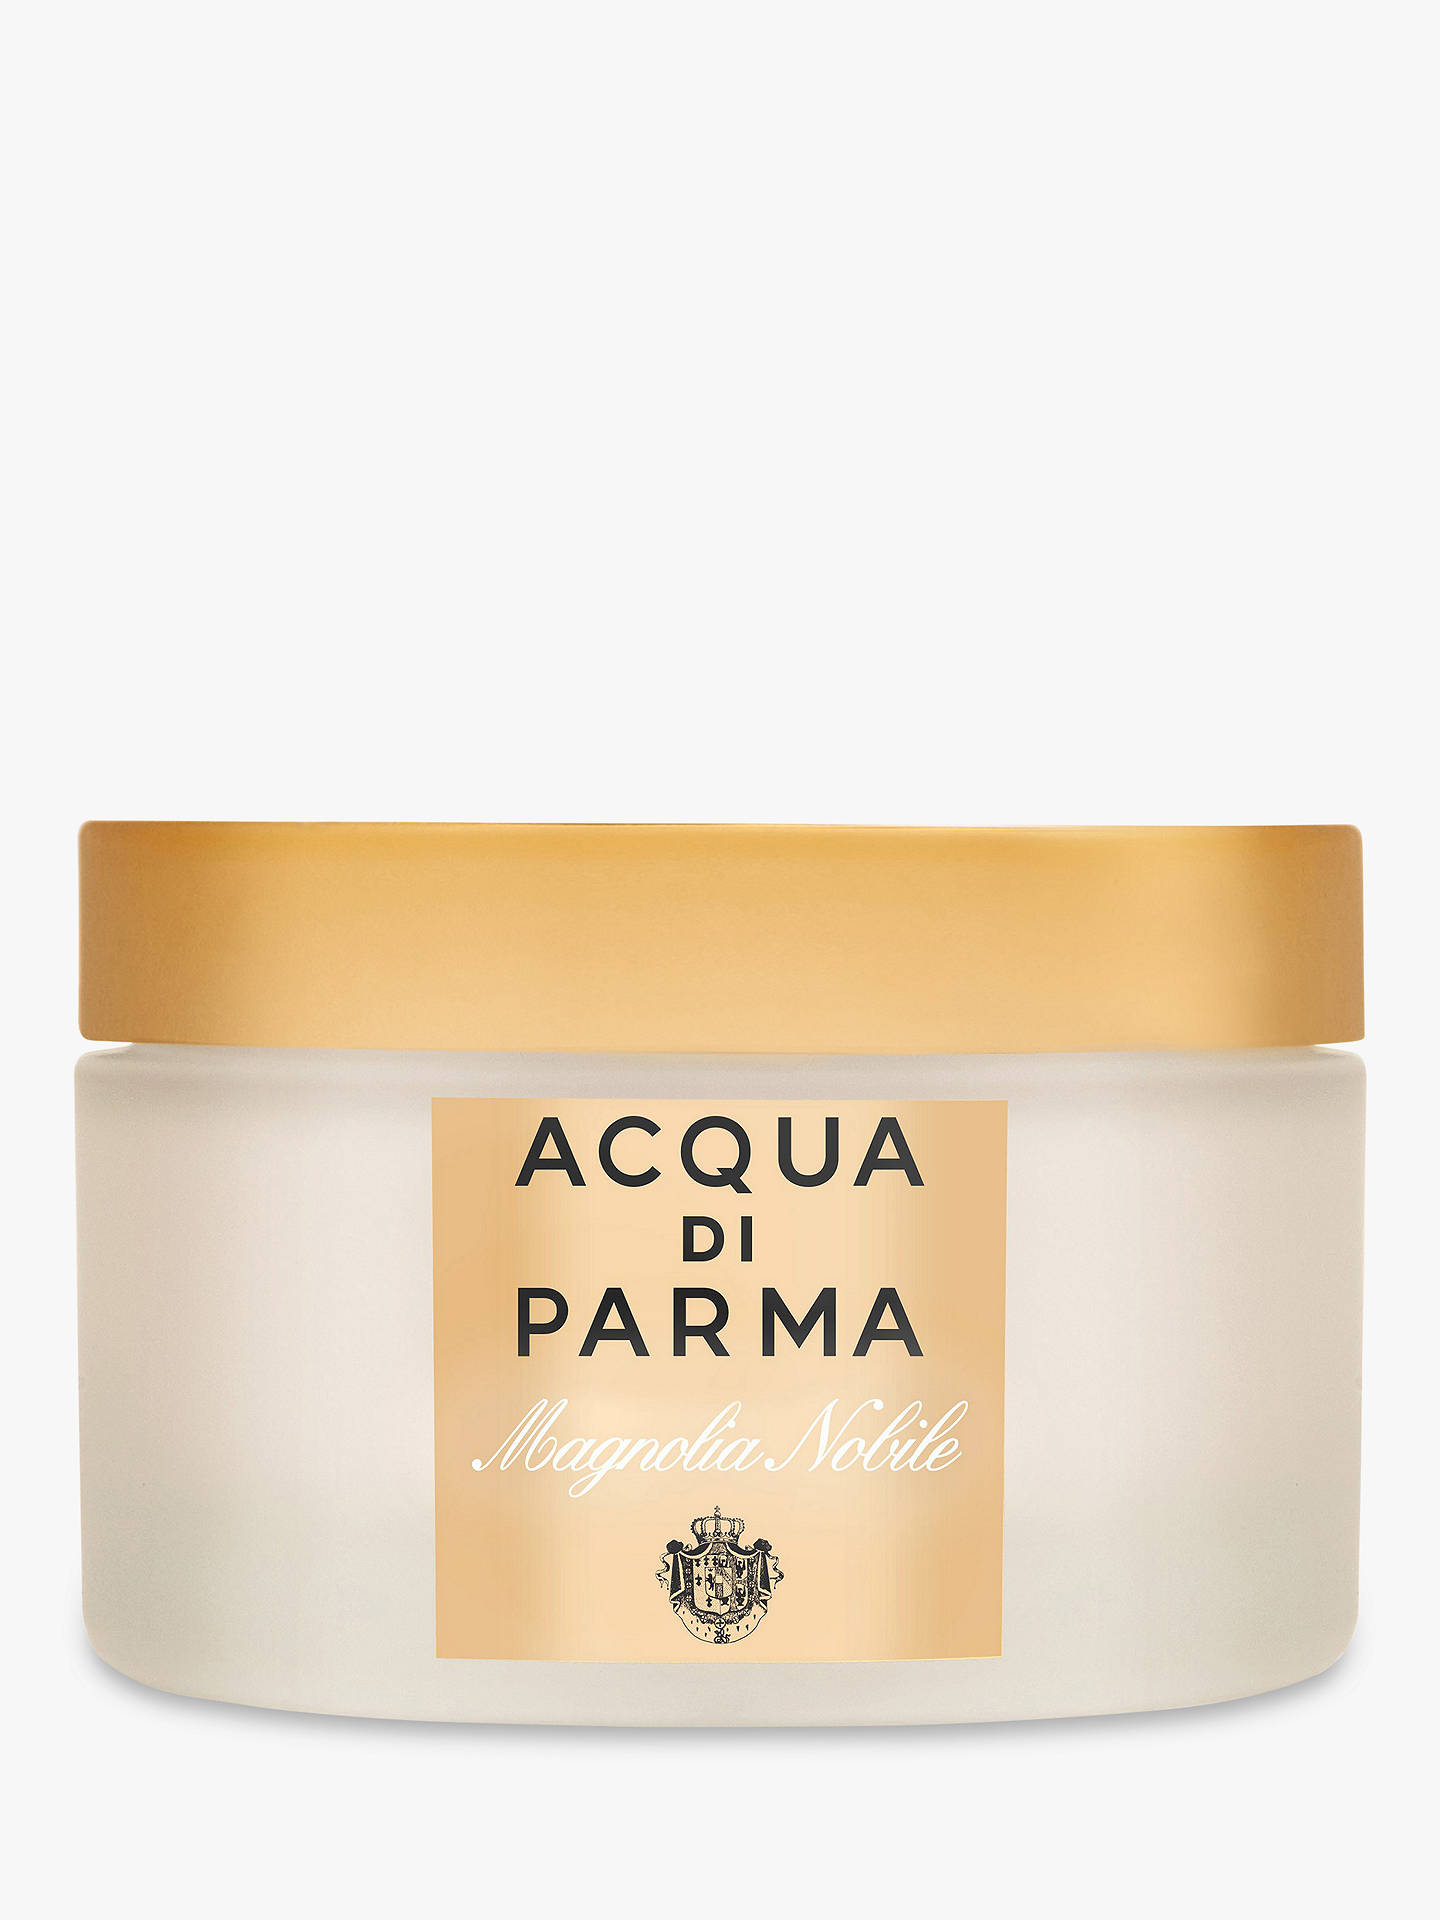 Buy Acqua di Parma Magnolia Nobile Body Cream, 150ml Online at johnlewis.com